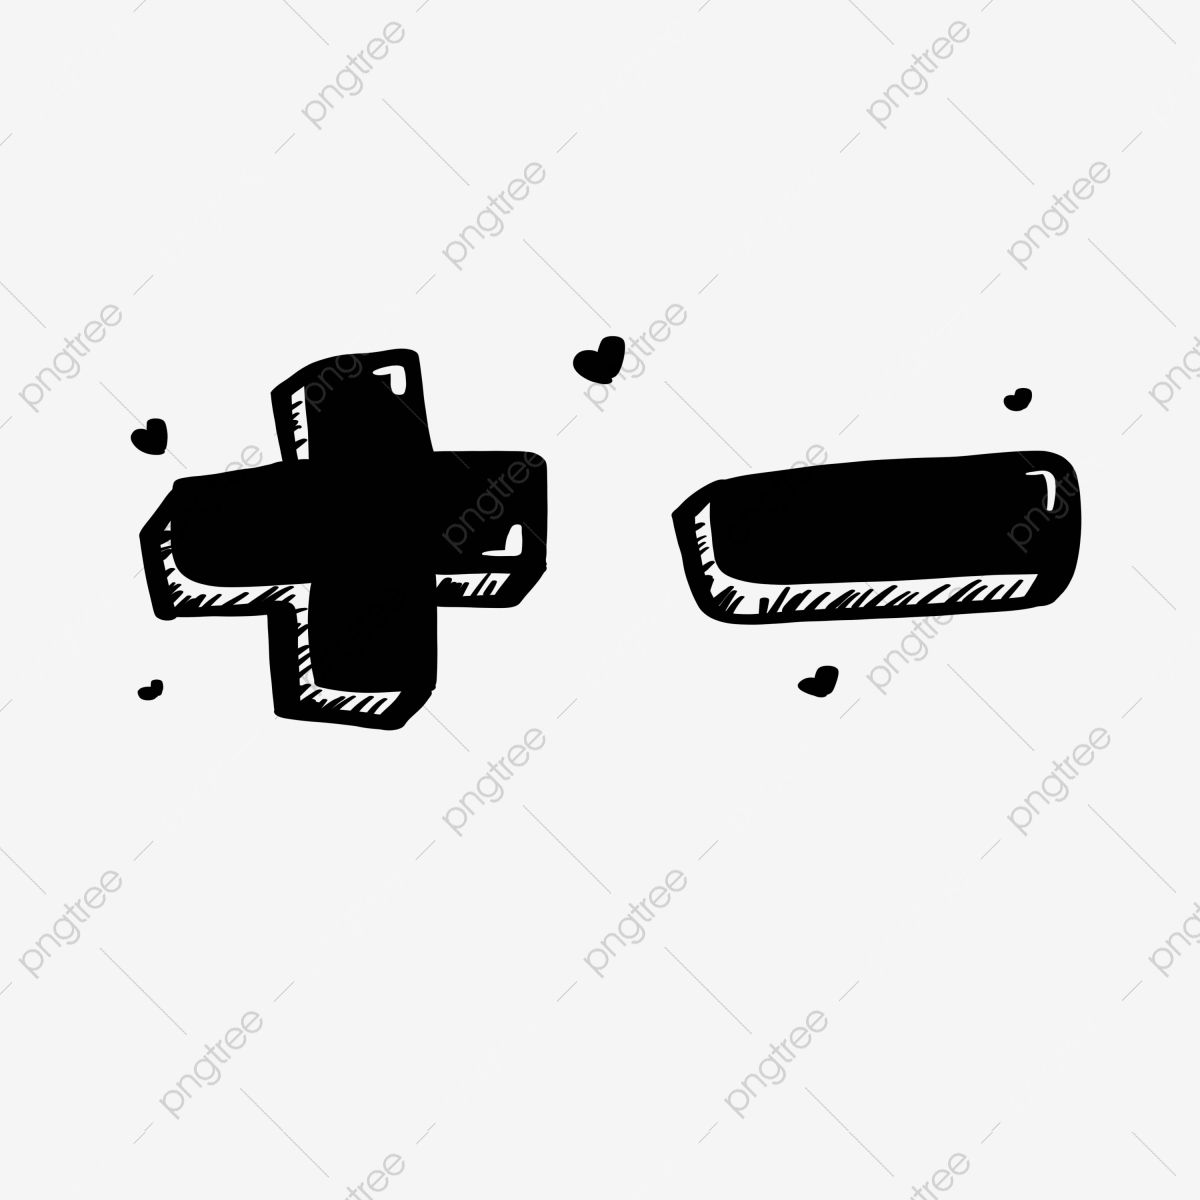 Black Solid Cartoon Plus Or Minus Symbol Black Stereo Cartoon Png Transparent Clipart Image And Psd File For Free Download Cartoons Png Symbols Clip Art